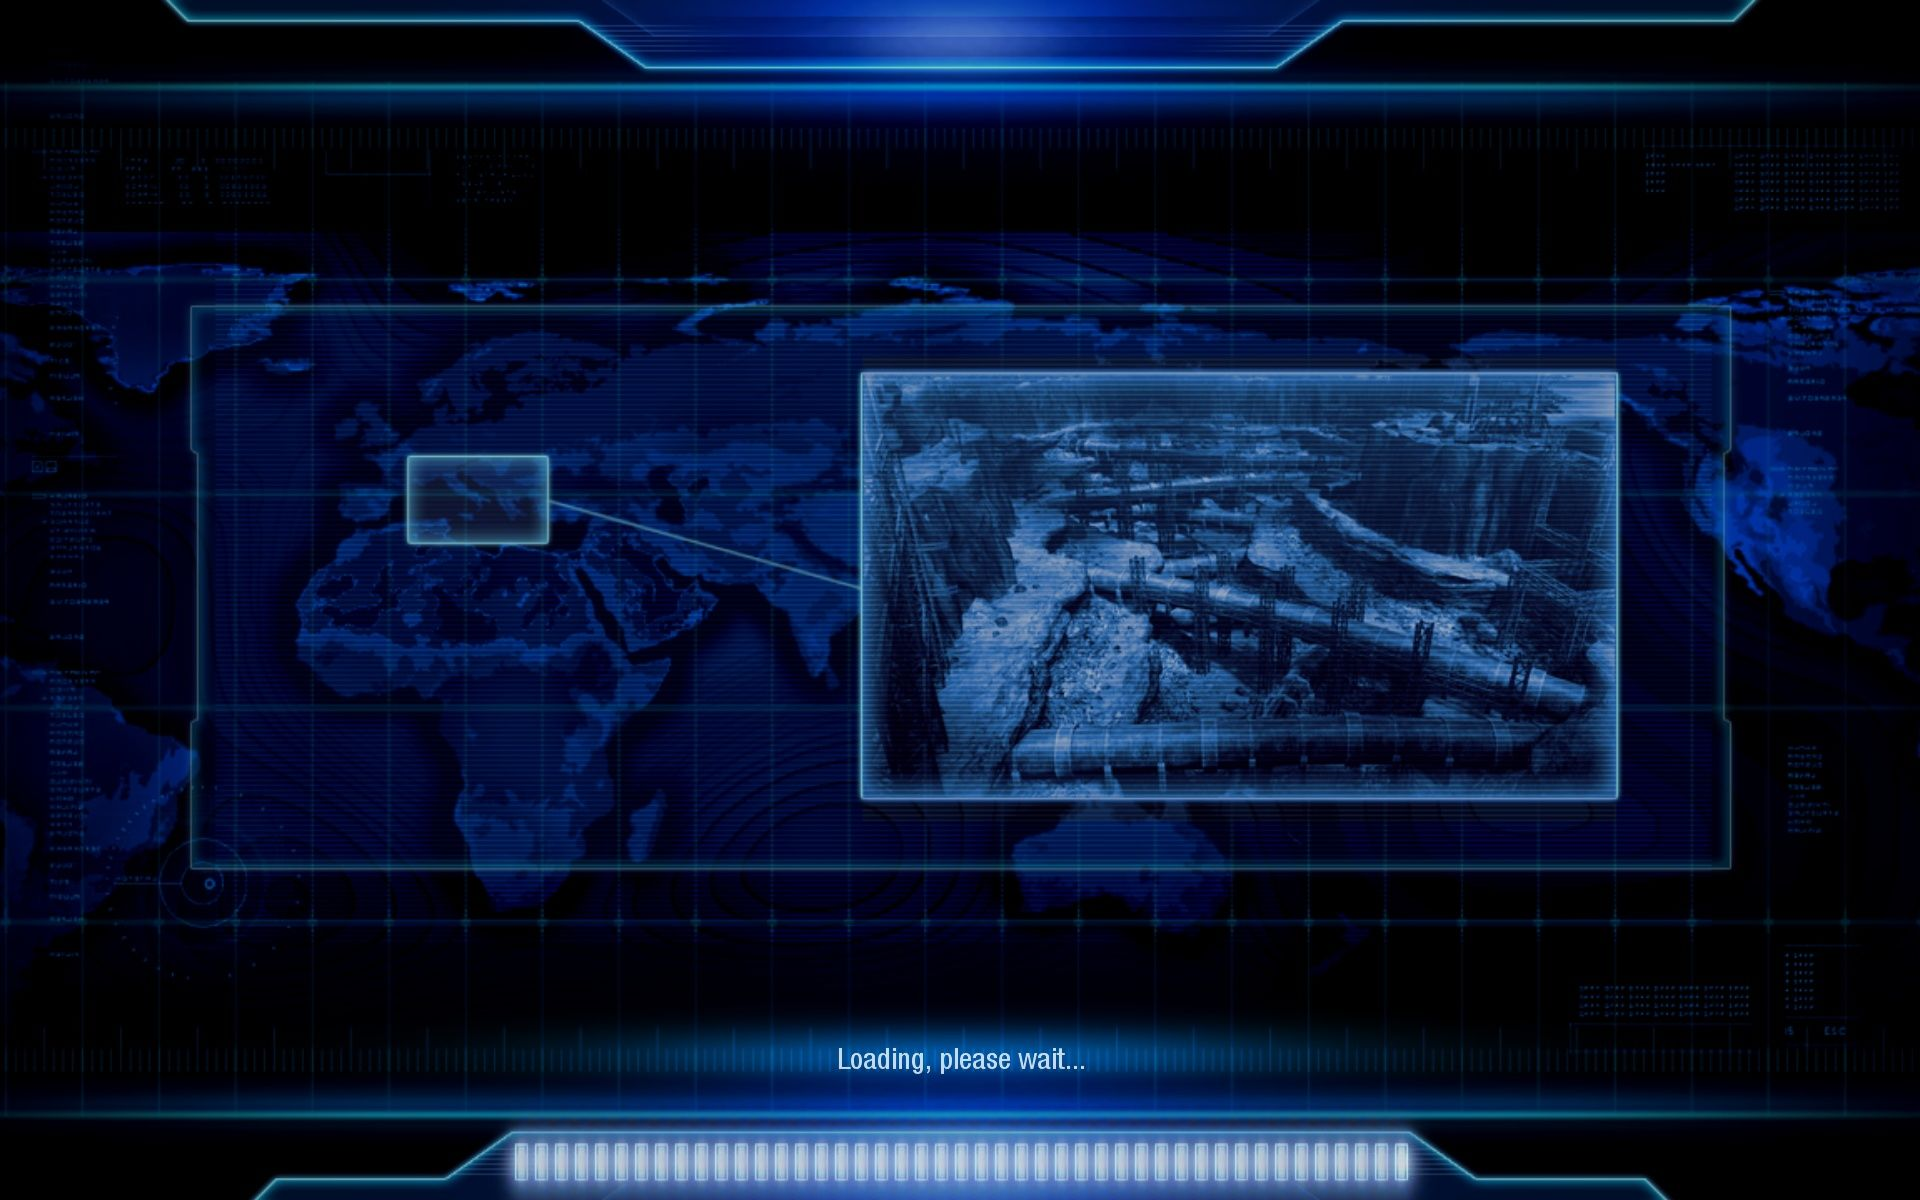 Command & Conquer 4: Tiberian Twilight Windows Loading Screen